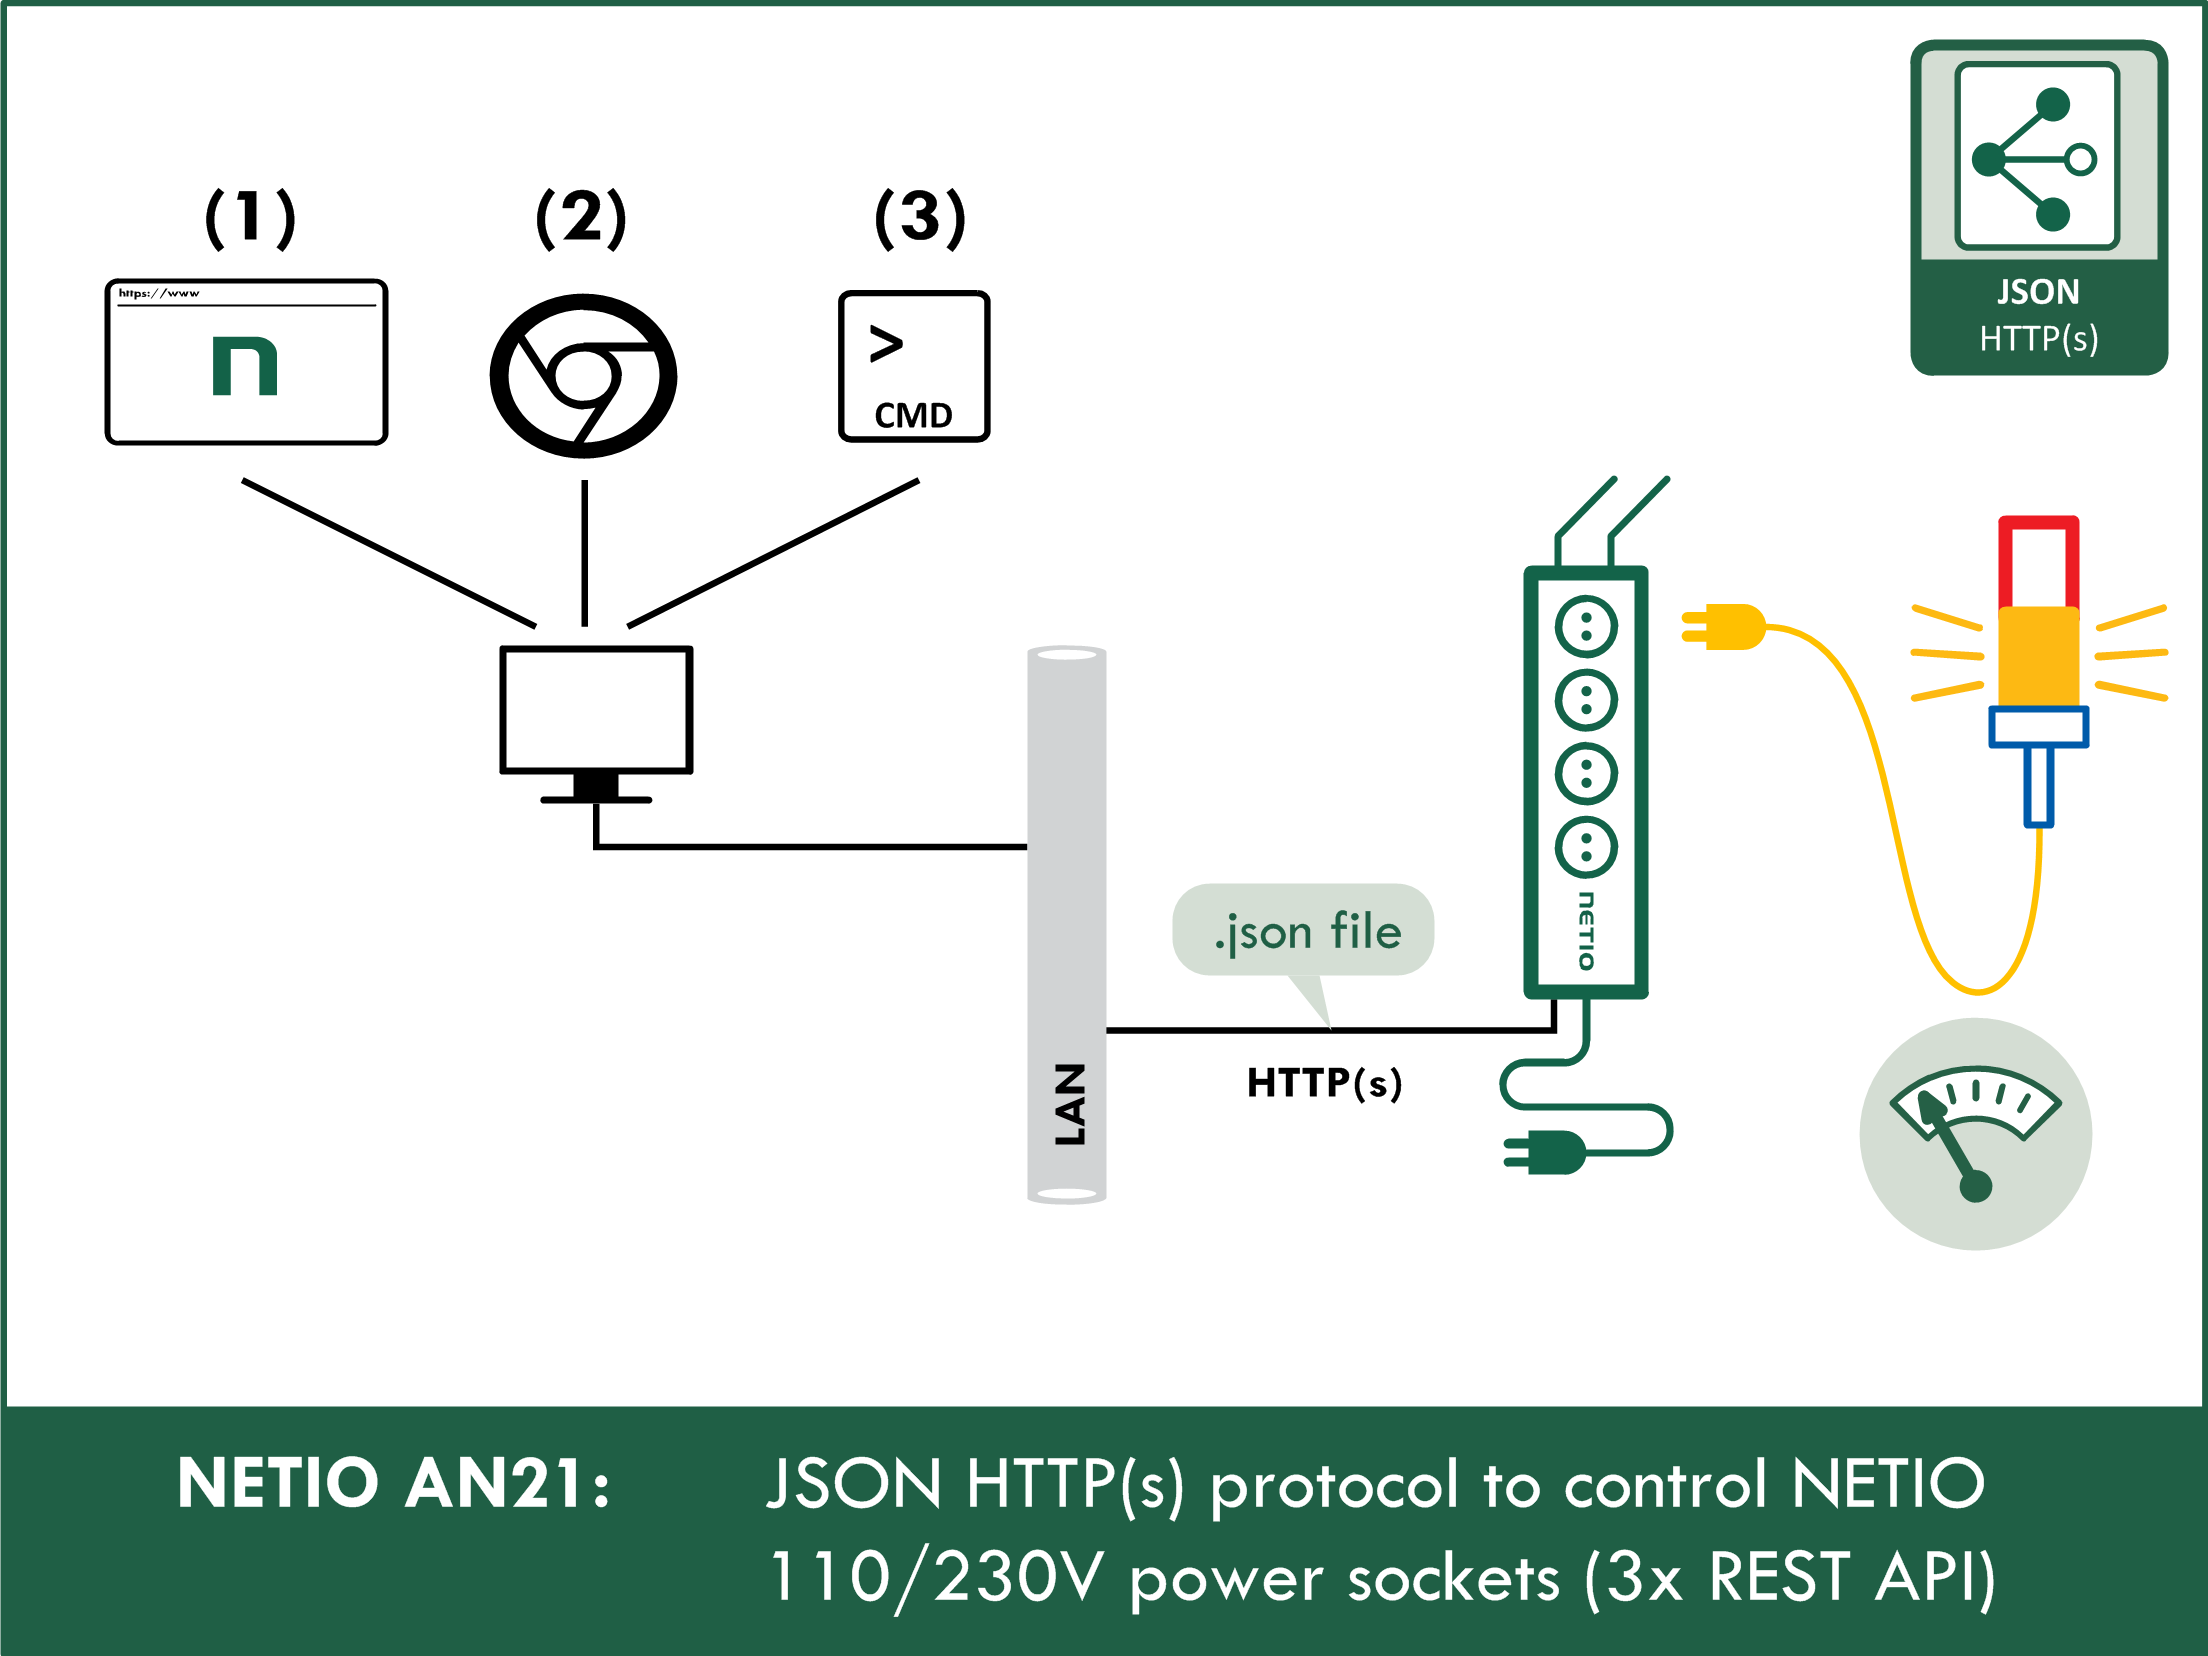 JSON-HTTP(S) protocol to control NETIO 110/230V power sockets (3x REST API)